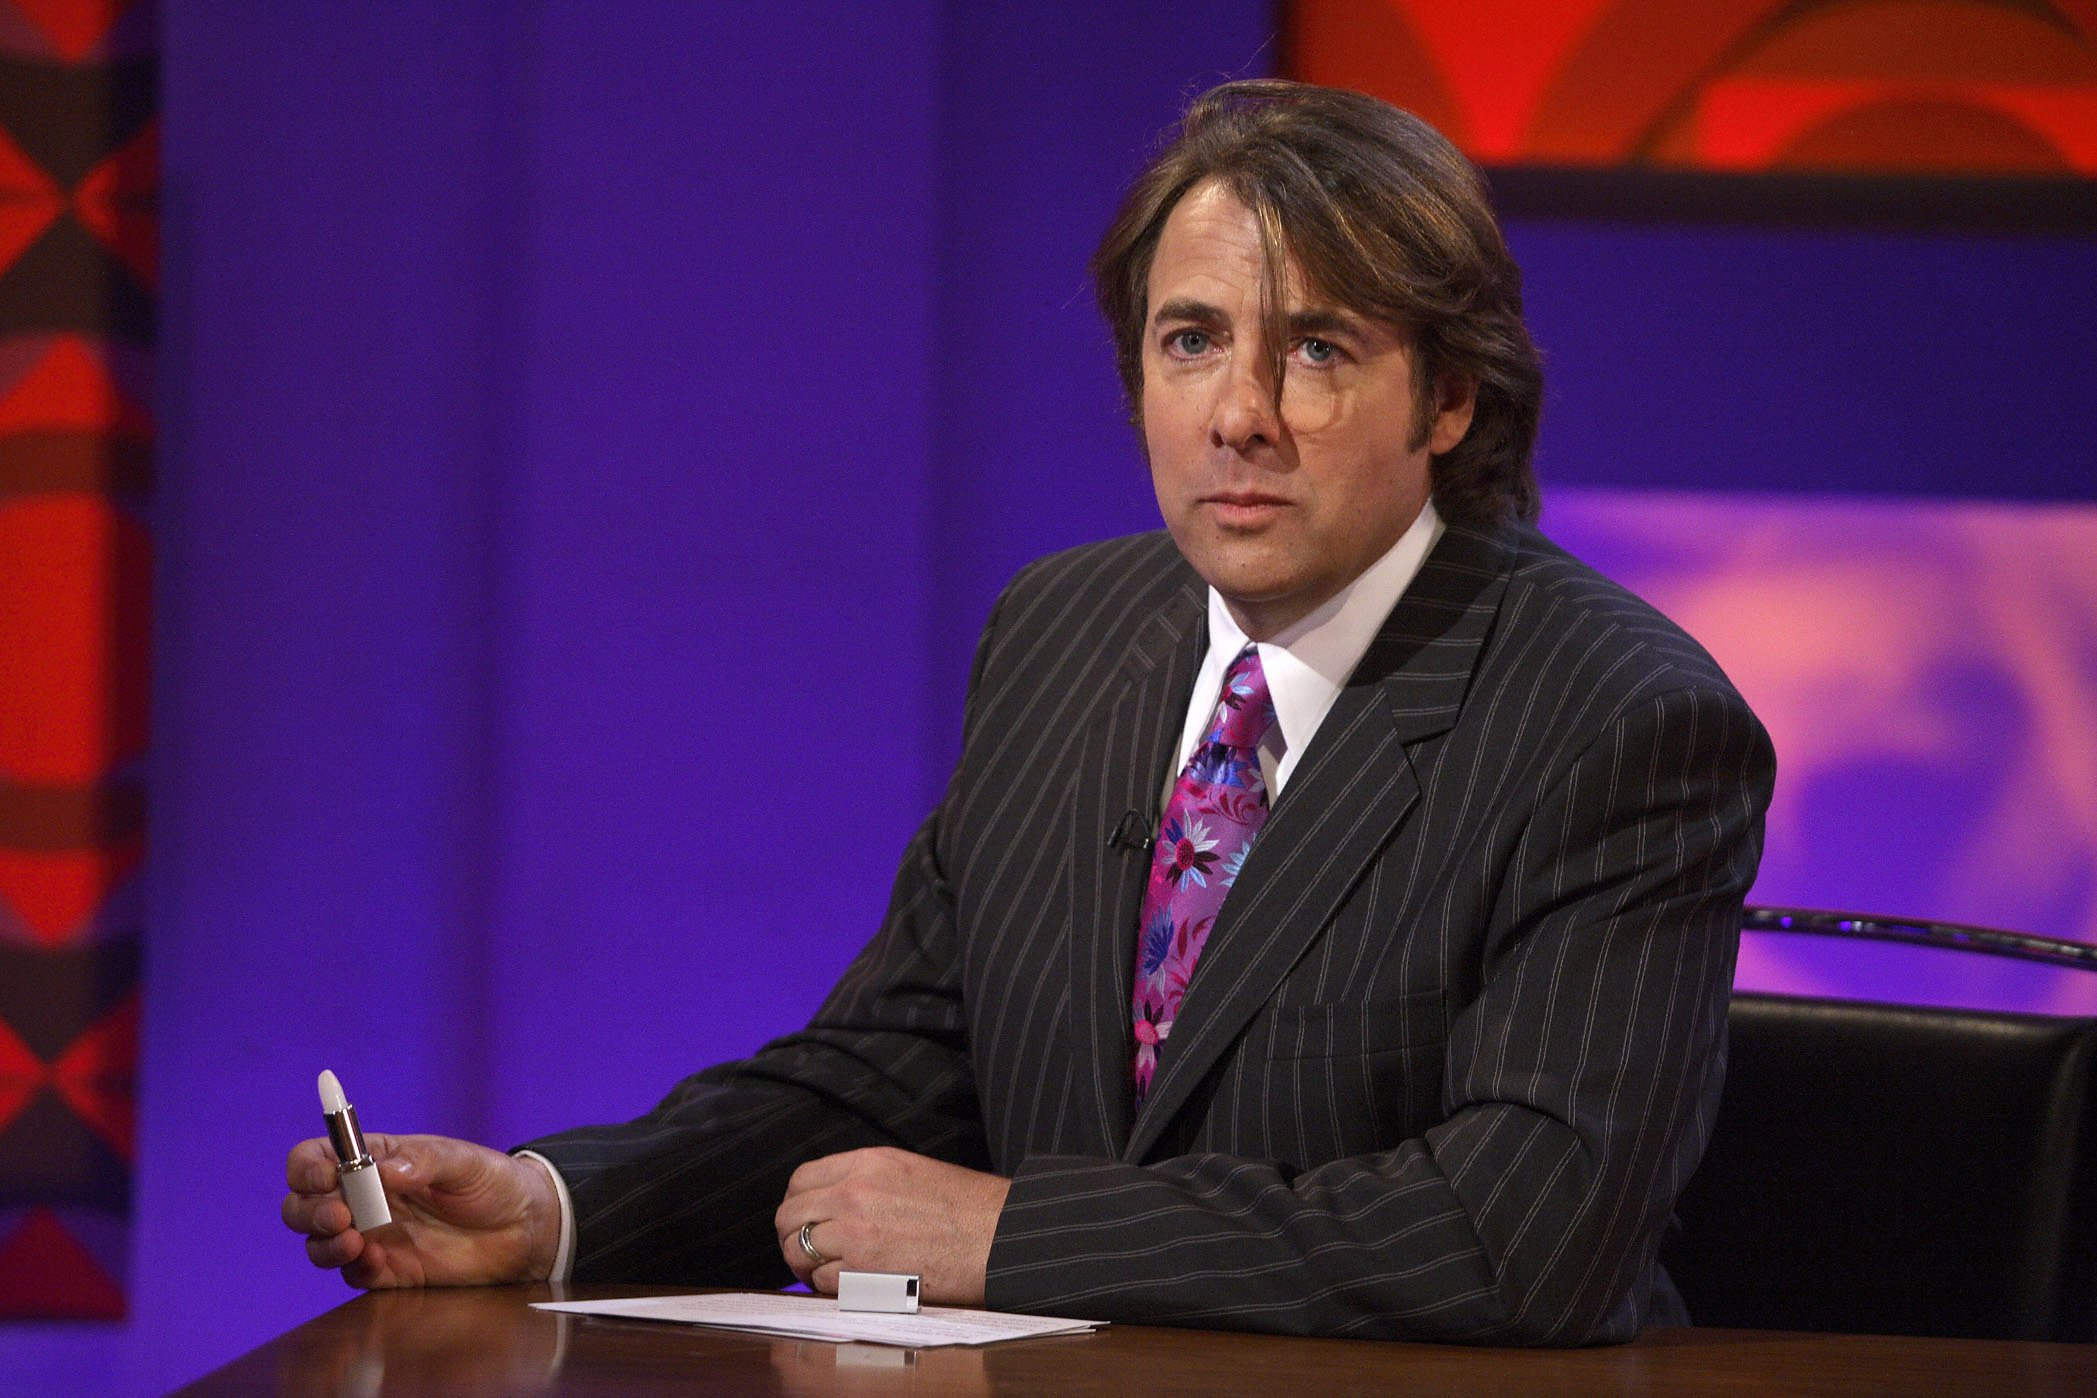 Jonathan Ross is back from his ban... almost